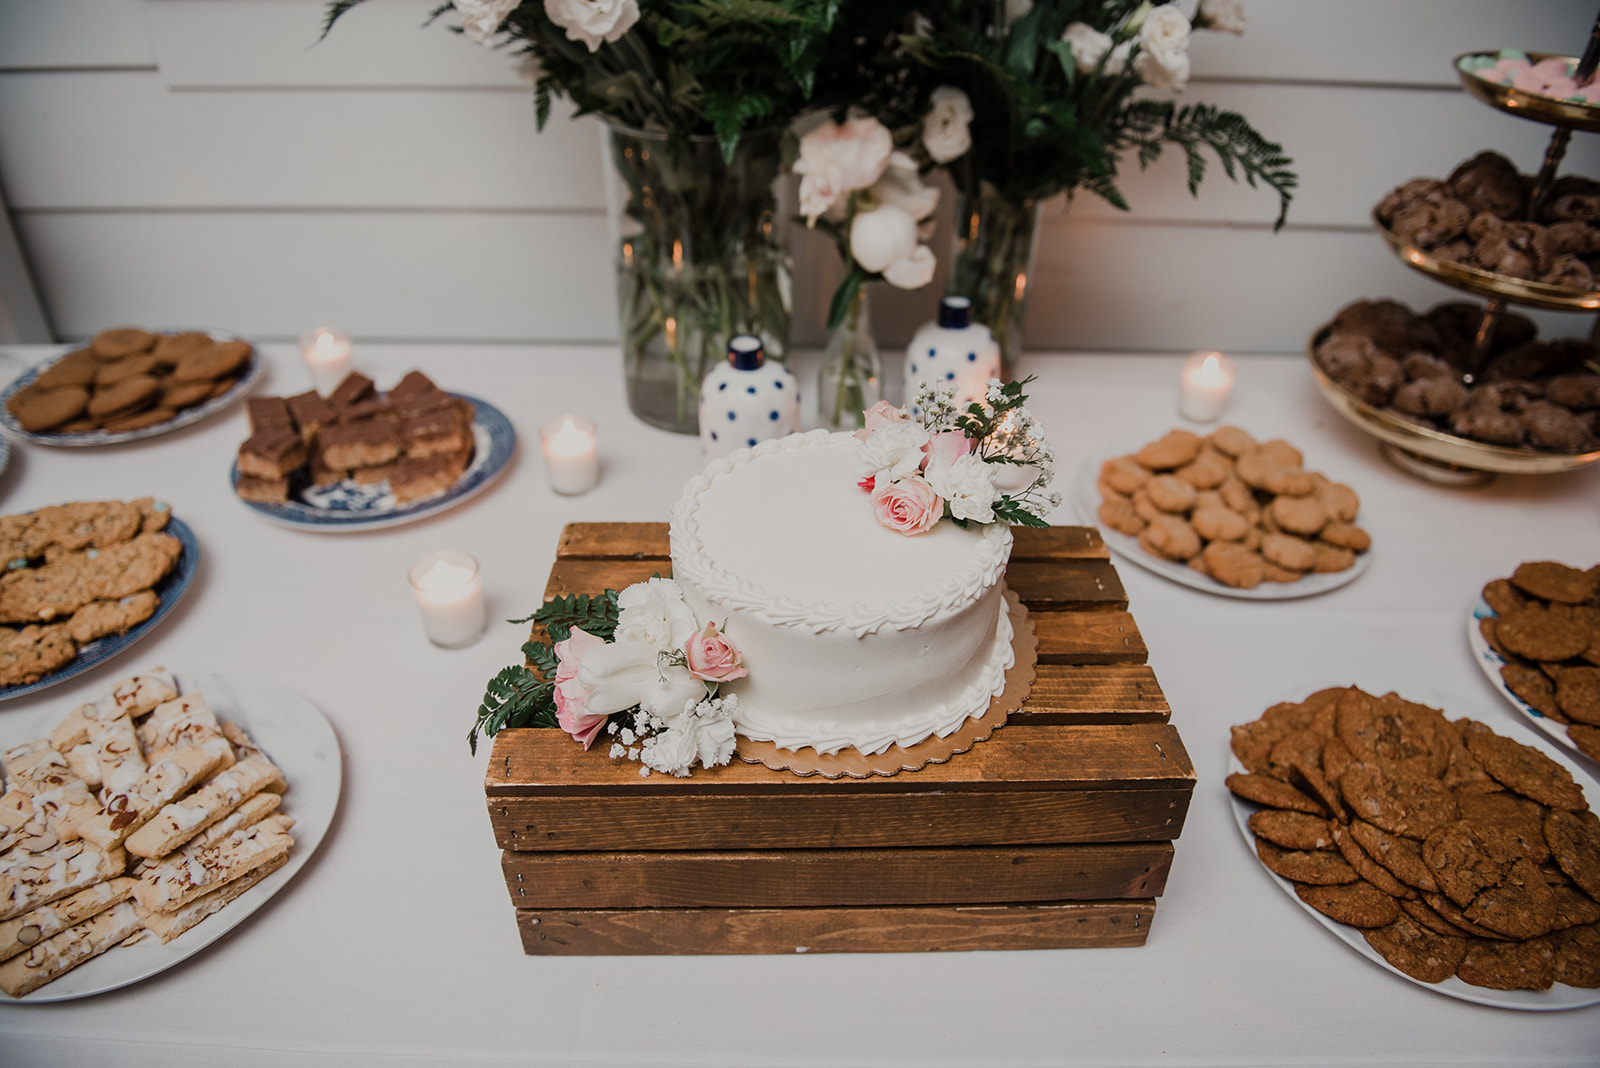 A white buttercream cake sits on a rustic wooden crate surrounded by other desserts at a wedding reception at Blue Hill Farm in Waterford, VA.